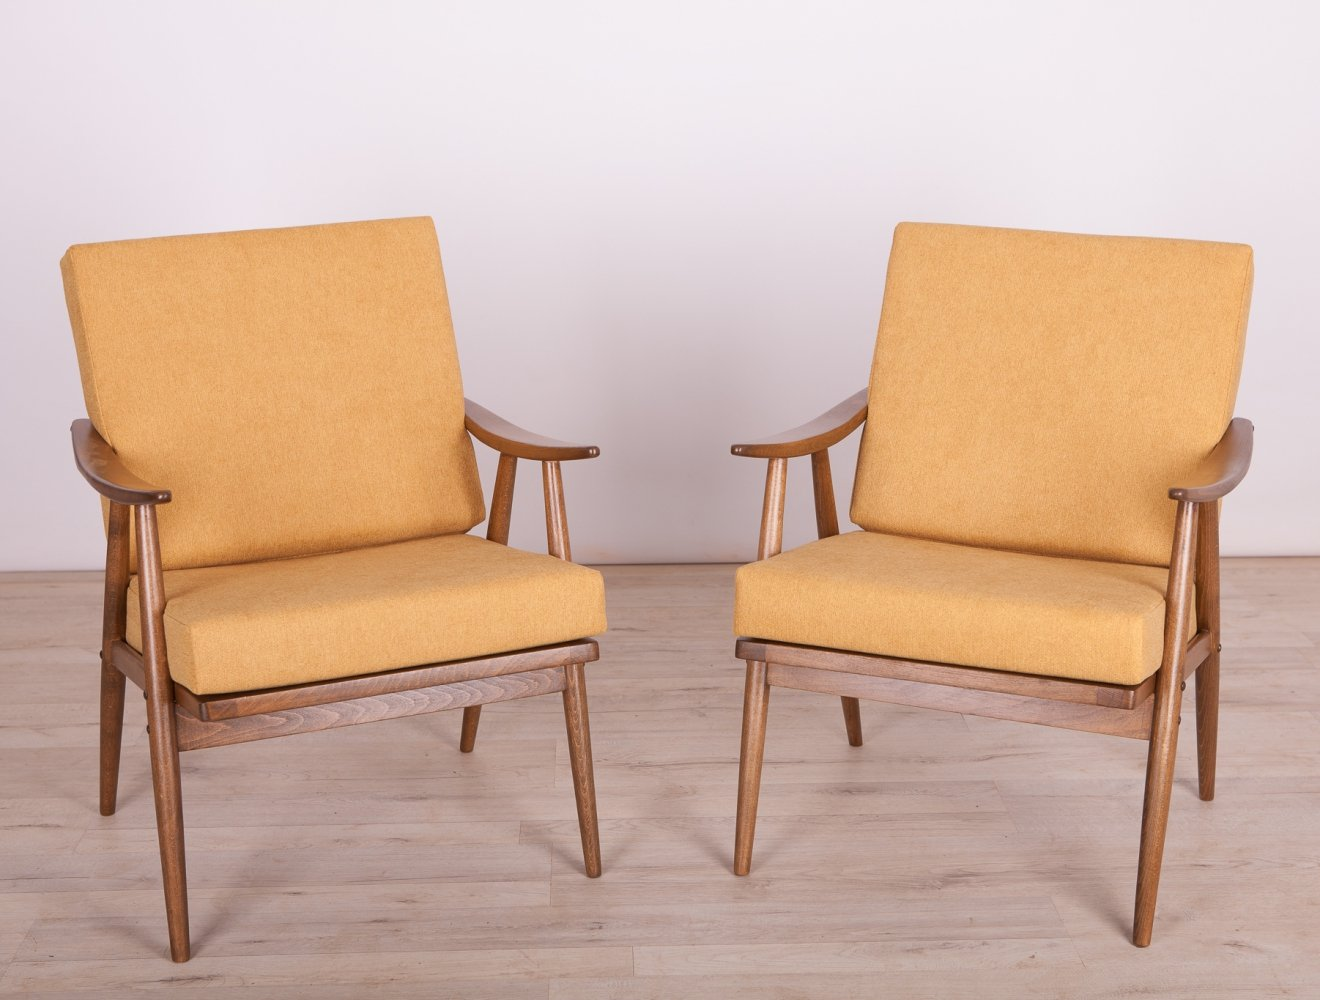 Pair of Vintage Armchairs from Ton Czech, 1960s